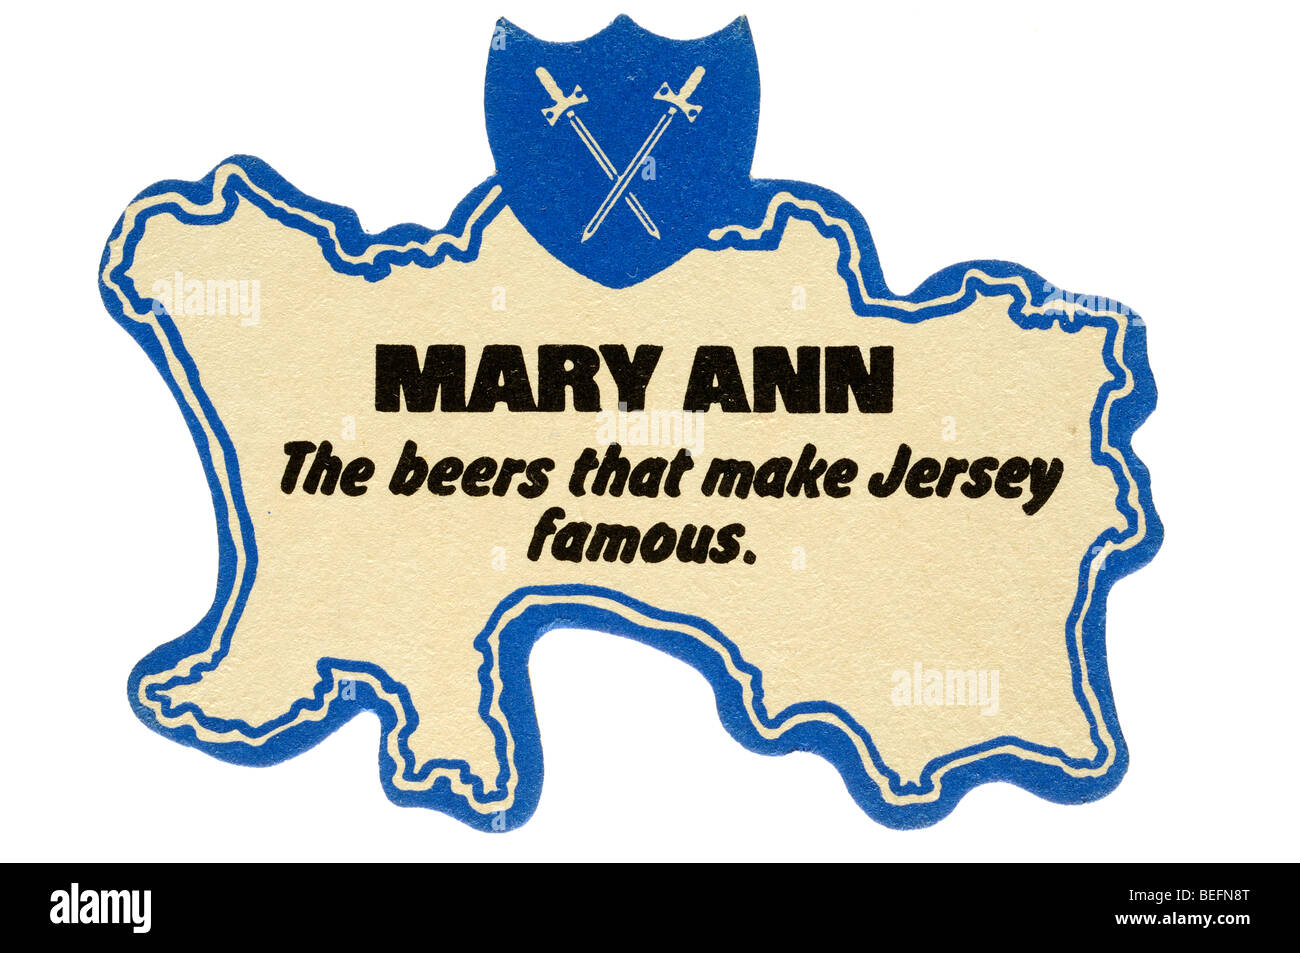 mary ann the beers that make jersey famous - Stock Image